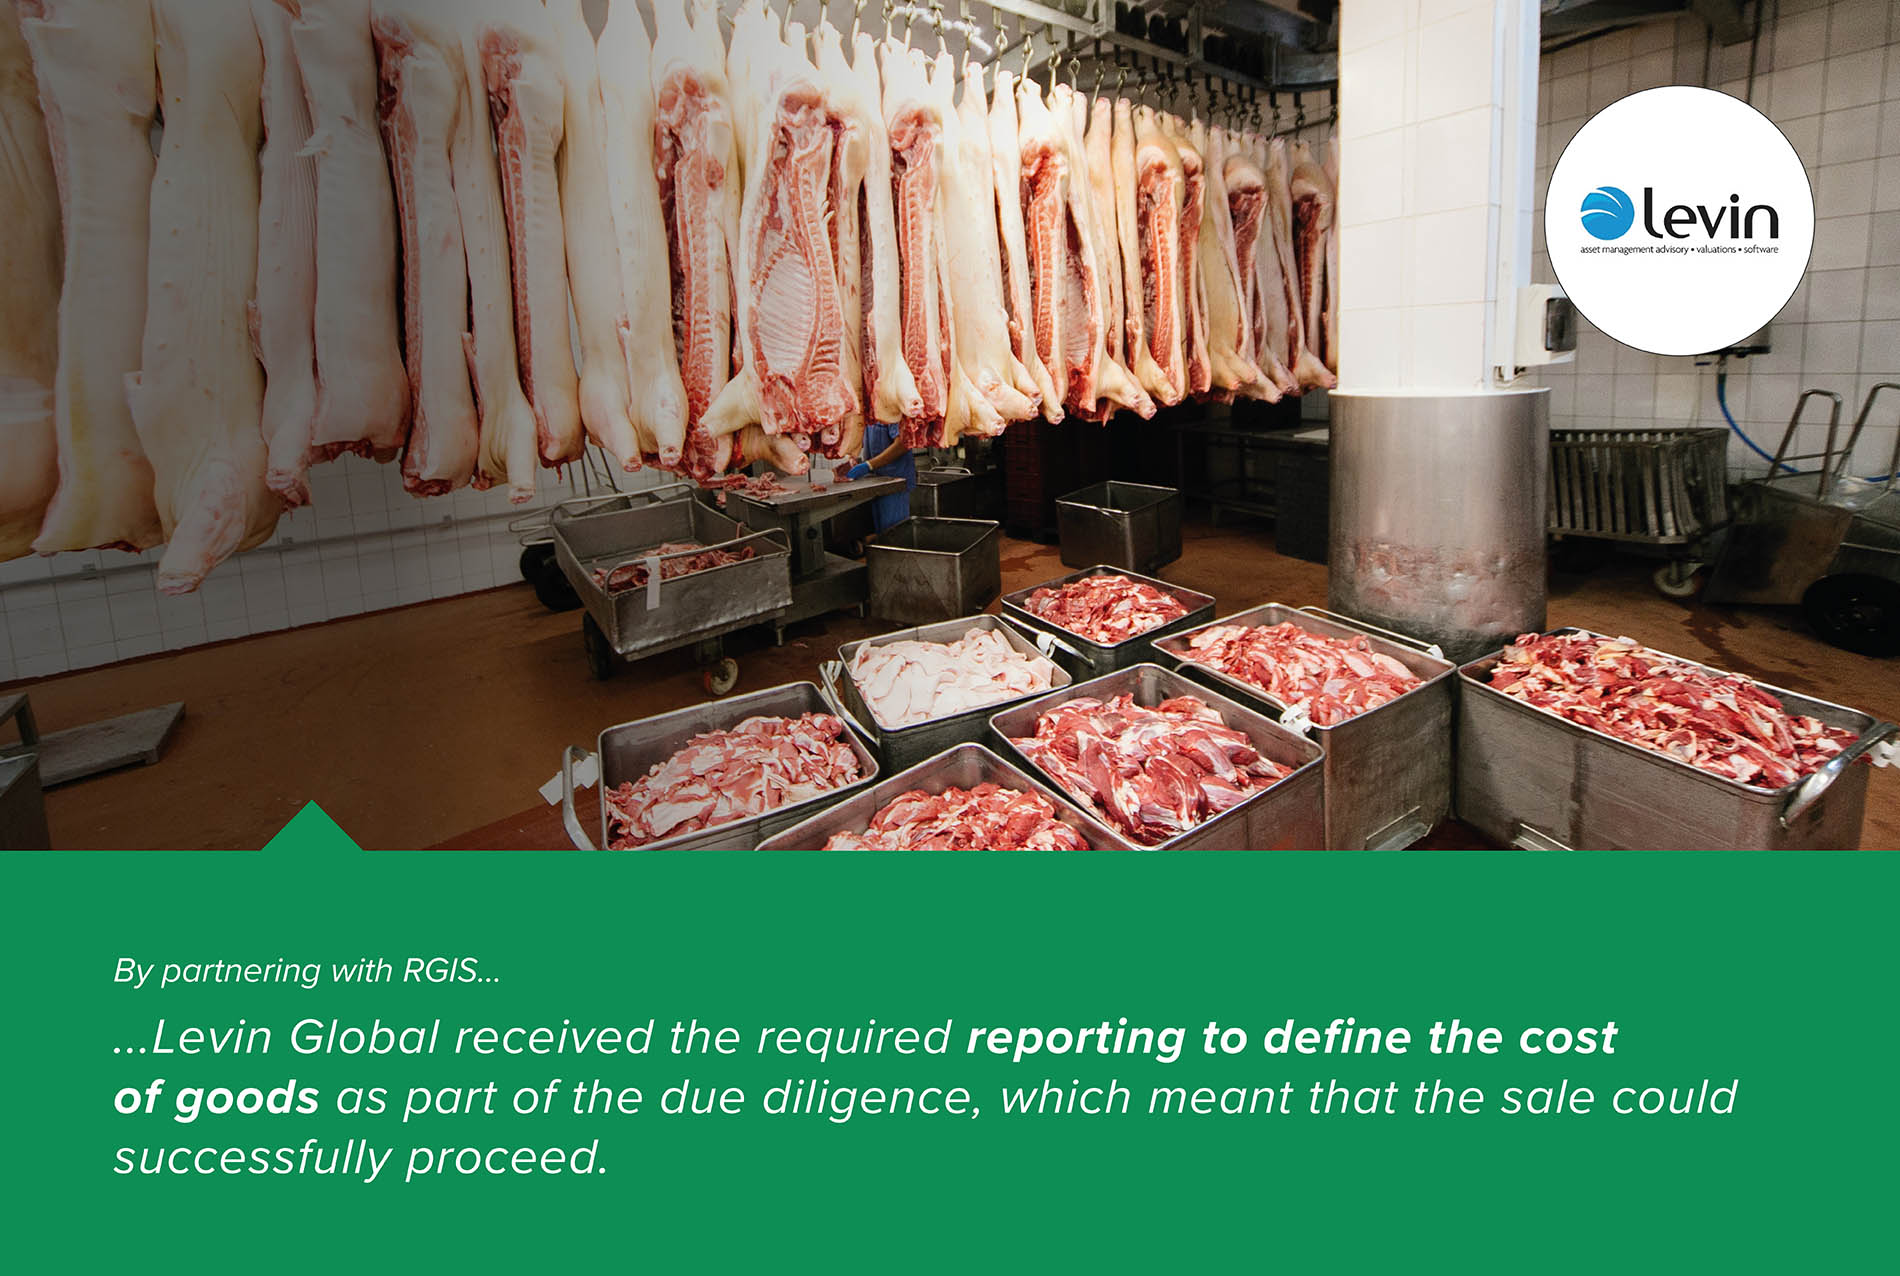 Inventory by Weight of Meat Across Three Distribution Centres